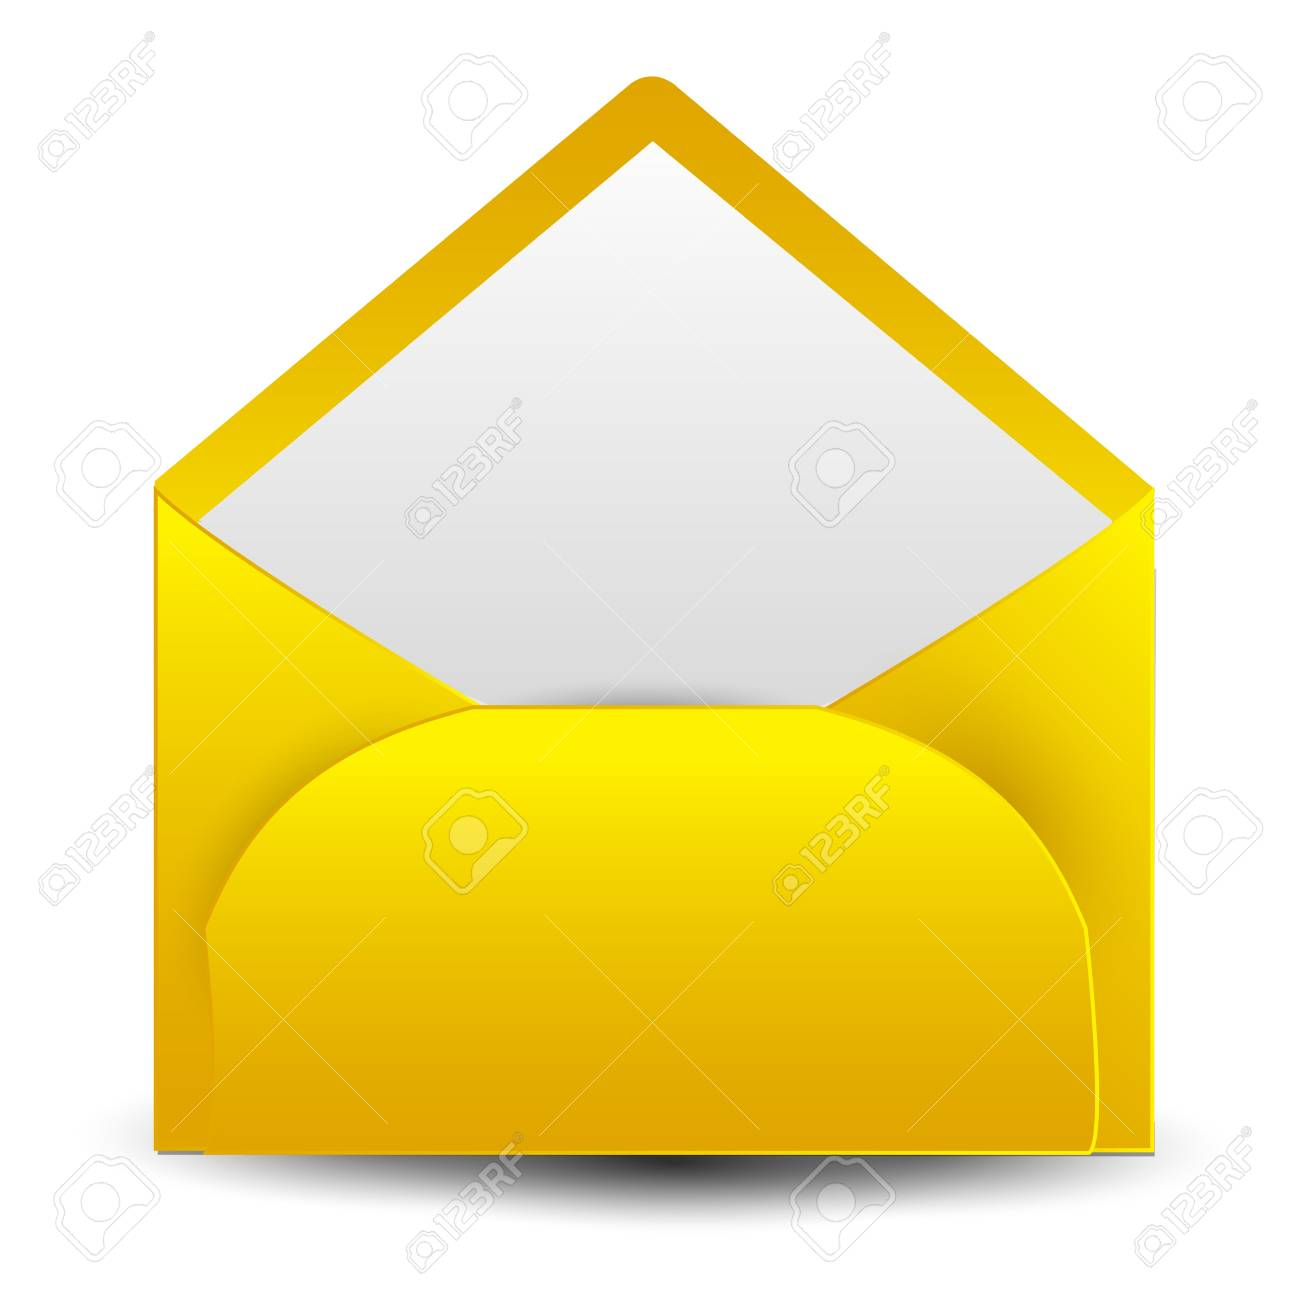 mail letter icon royalty free cliparts, vectors, and stock